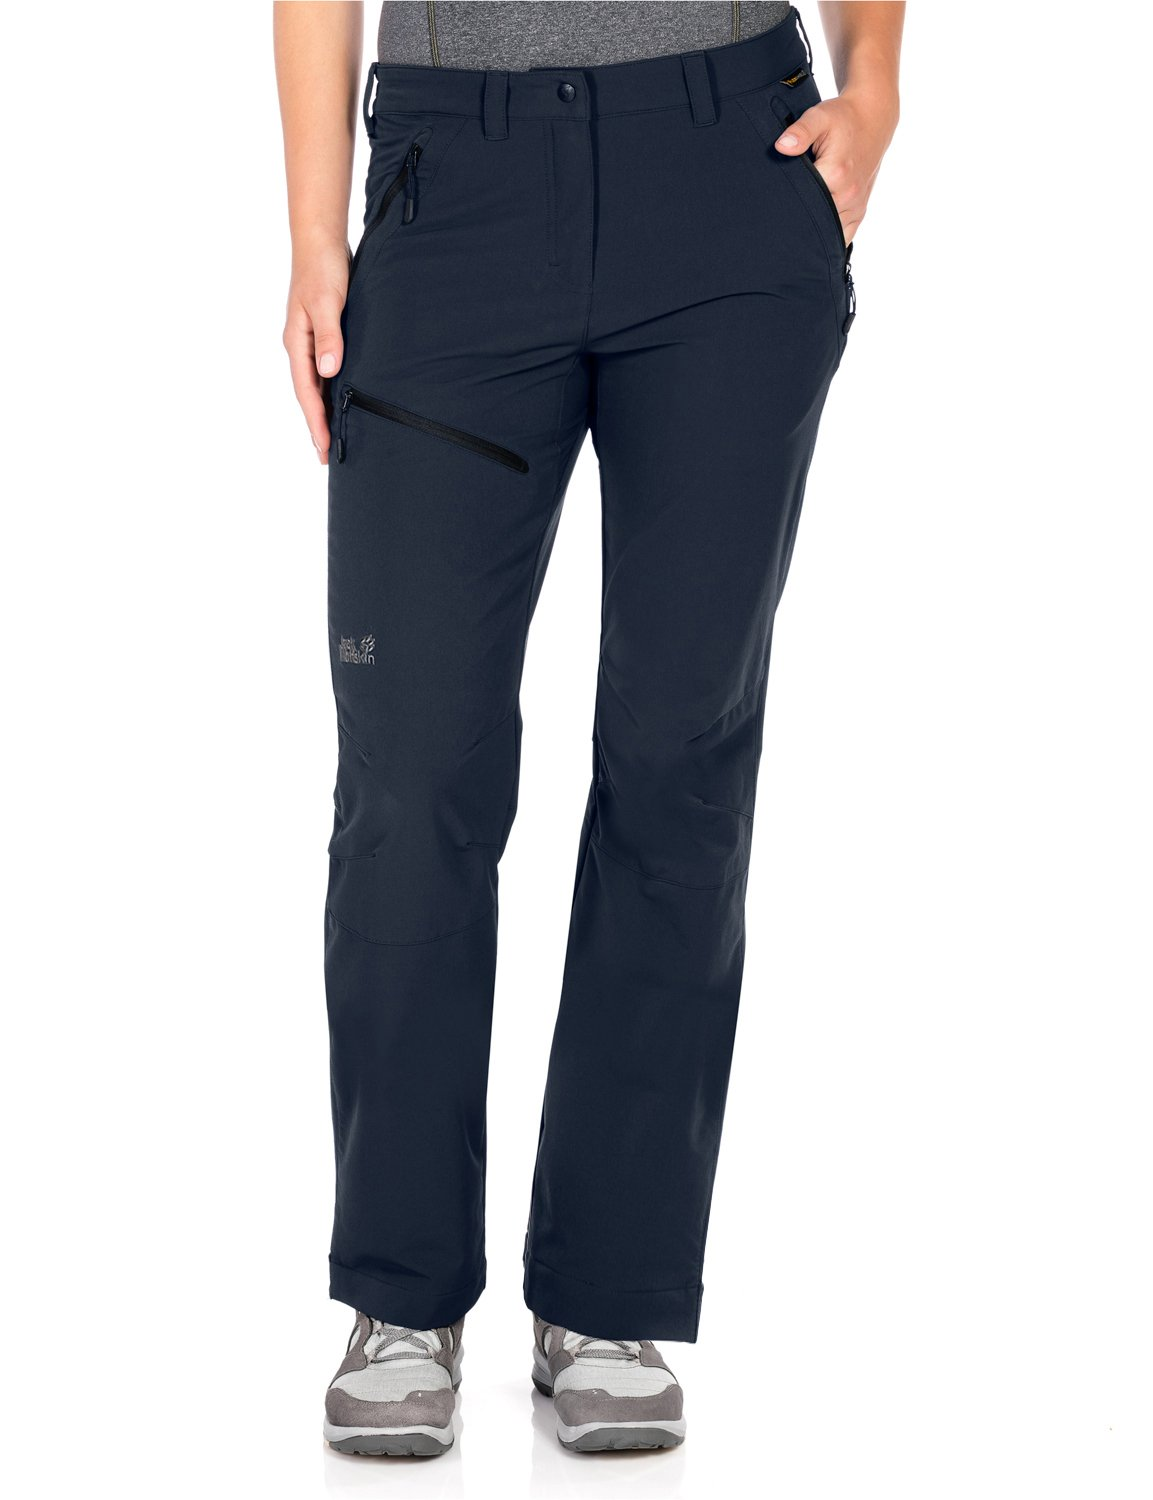 Jack Wolfskin Women's Activate Pants, Night Blue, Size 44 (US 34)